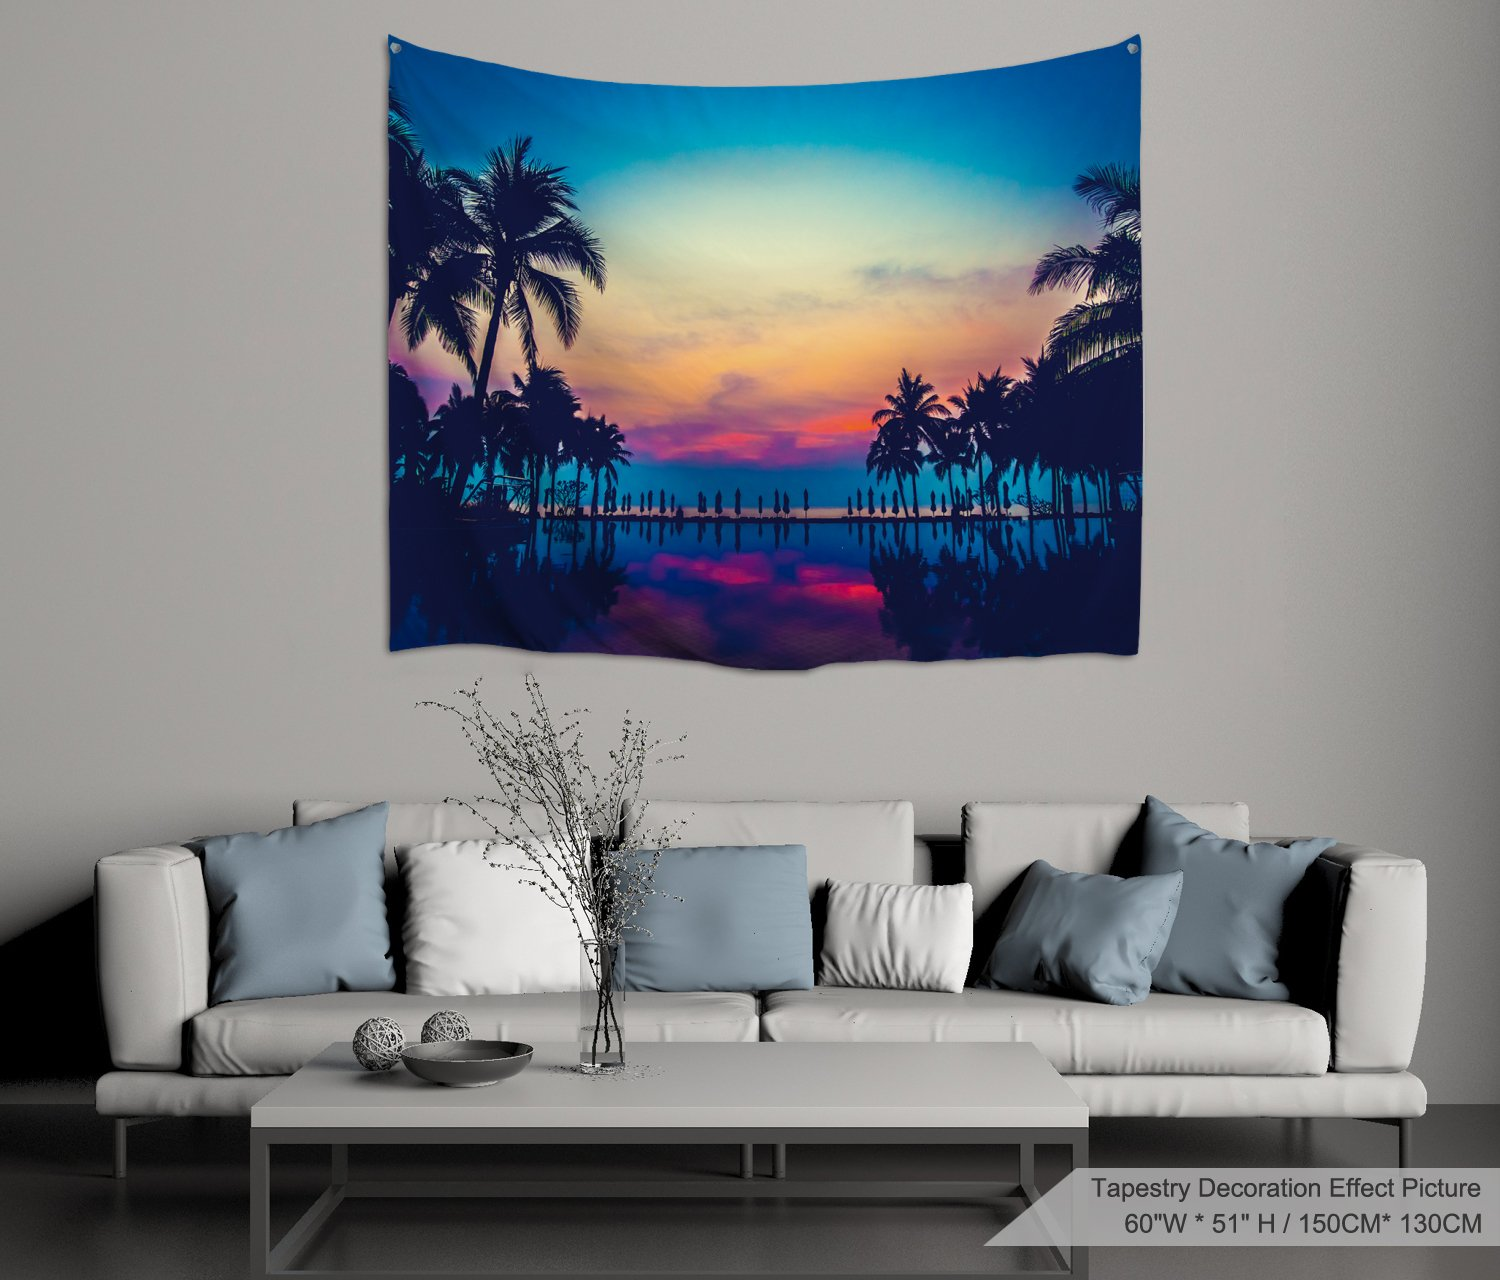 XINYI Home Wall Hanging Nature Art Polyester Fabric Coconut Tree Theme Tapestry, Wall Decor For Dorm Room, Bedroom, Living Room, Nail Included - 60'' W x 51'' H (150cmx130cm) - Sunset